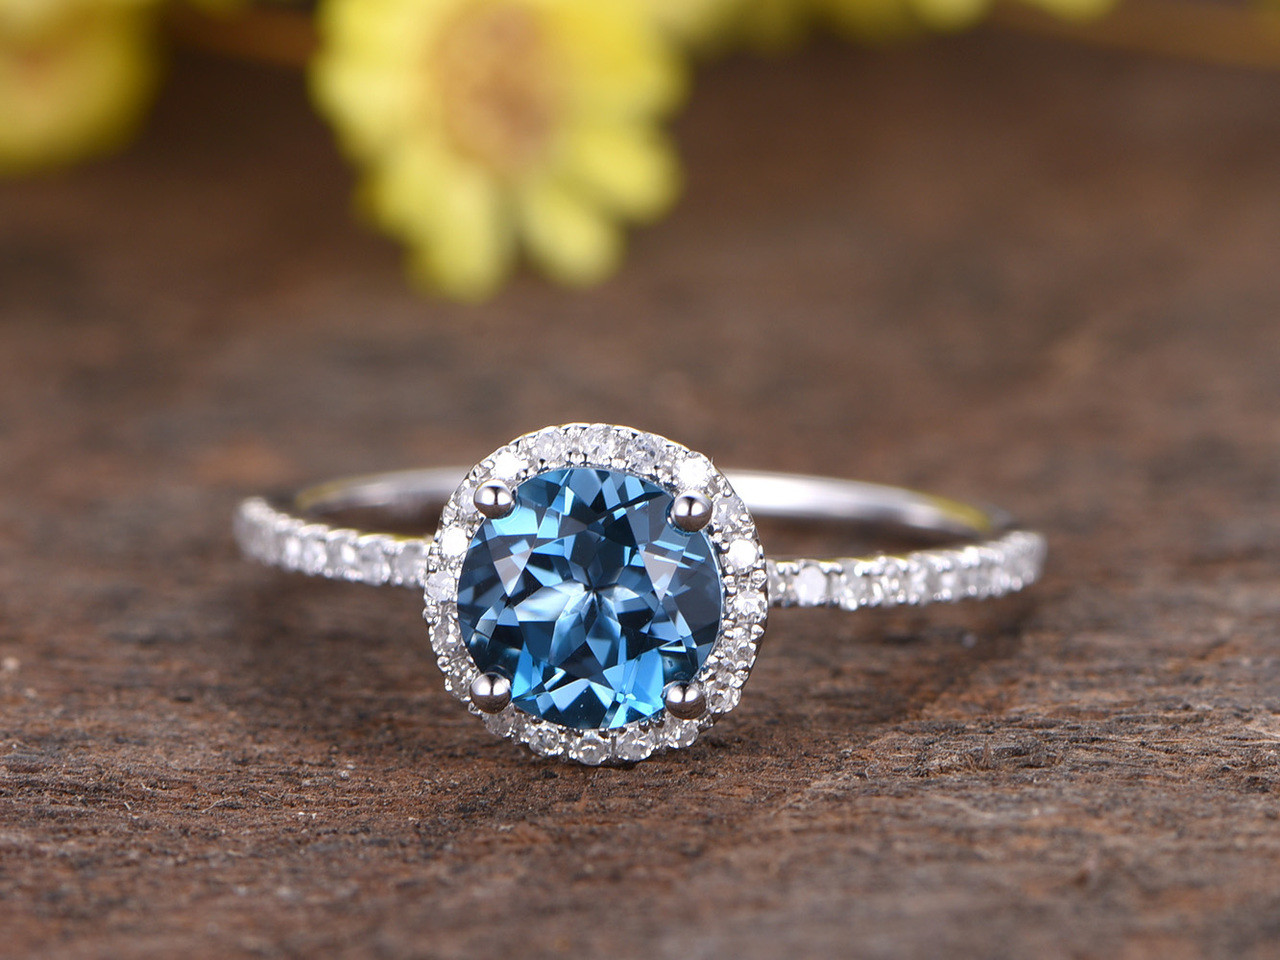 princess jewelry products diamond rare free anniversary earth conflict halo natural or cut topaz birthstone blue ring london